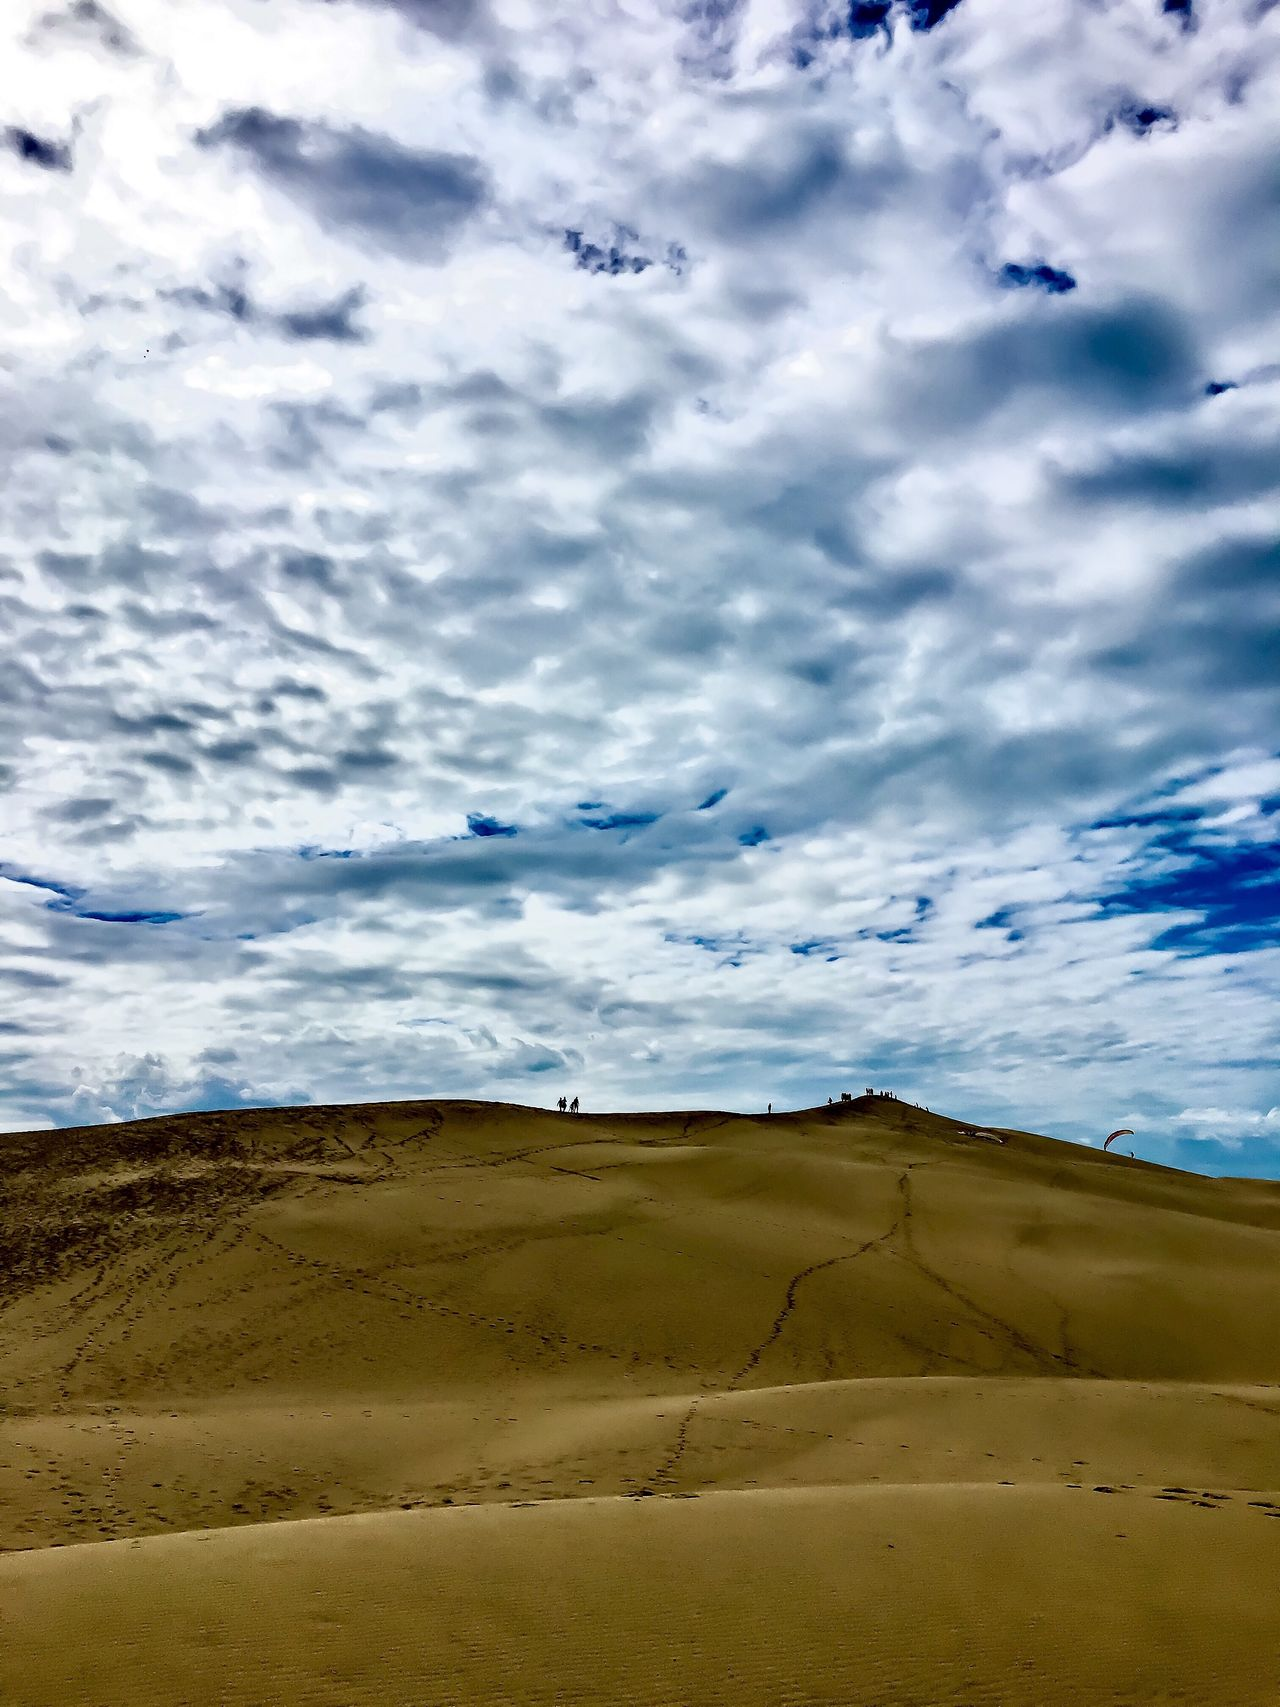 Highest Dune of Europe Dune Du Pyla France Sky Landscape Cloud - Sky Beauty In Nature Tranquil Scene Sand Sand Dune Travel Destinations Outdoors Nature Sunday